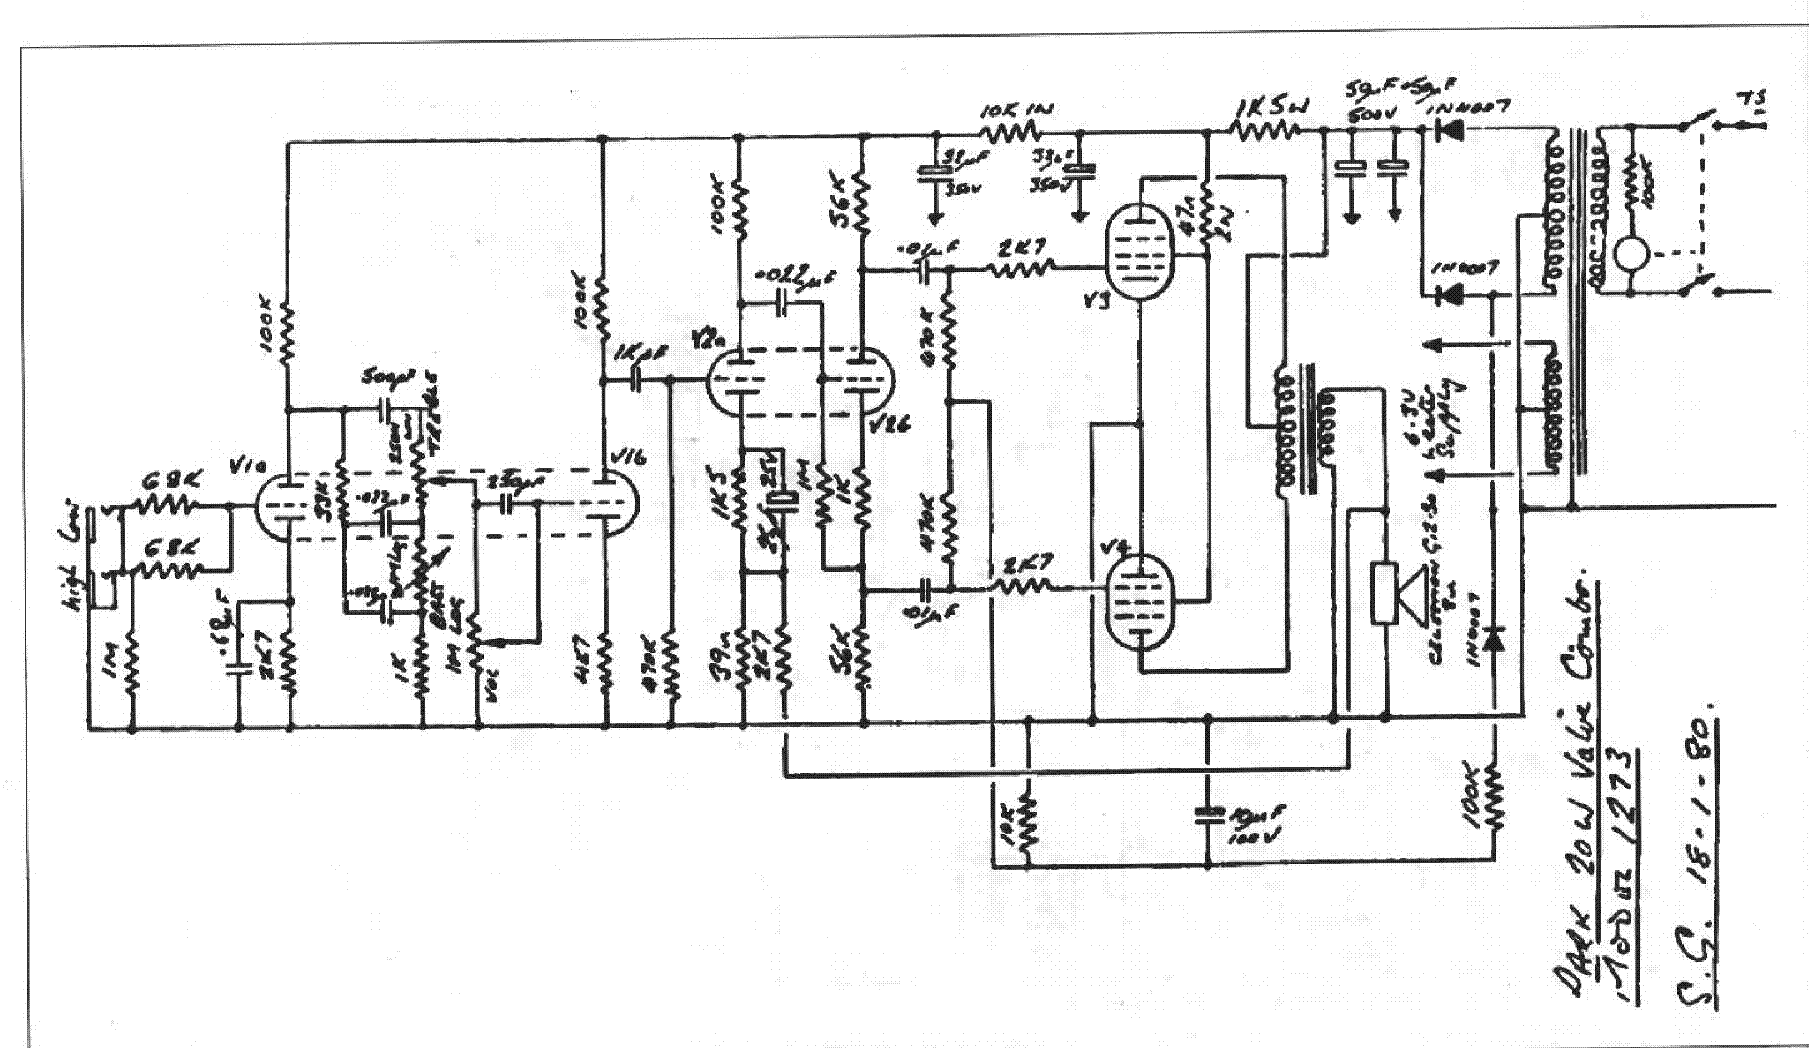 park amp schematics wiring diagram crate guitar amp wiring diagram #4